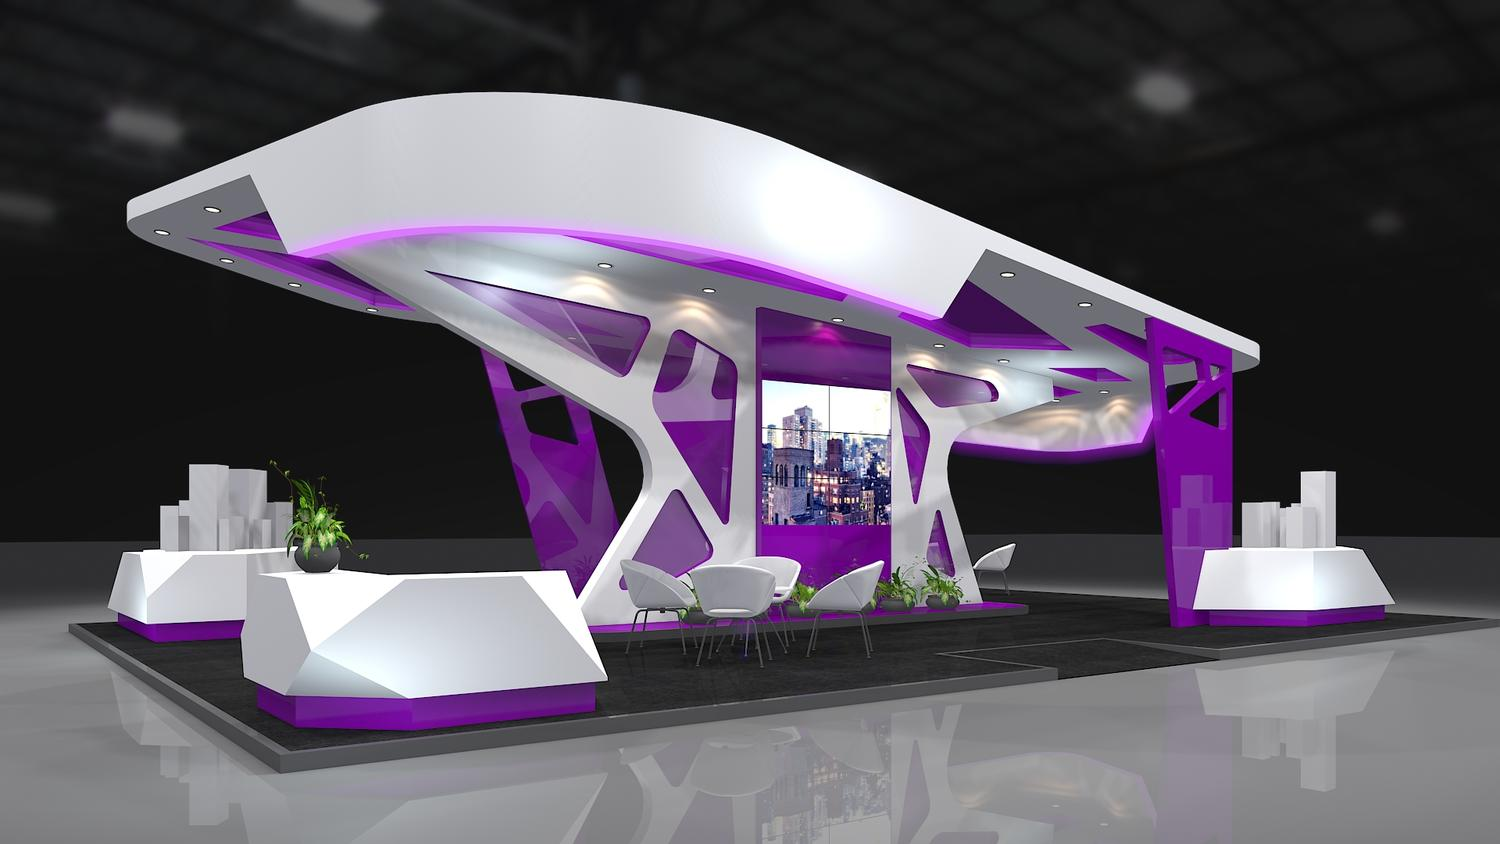 3d Exhibition Design : Exhibition booth d design by abellangbid on envato studio